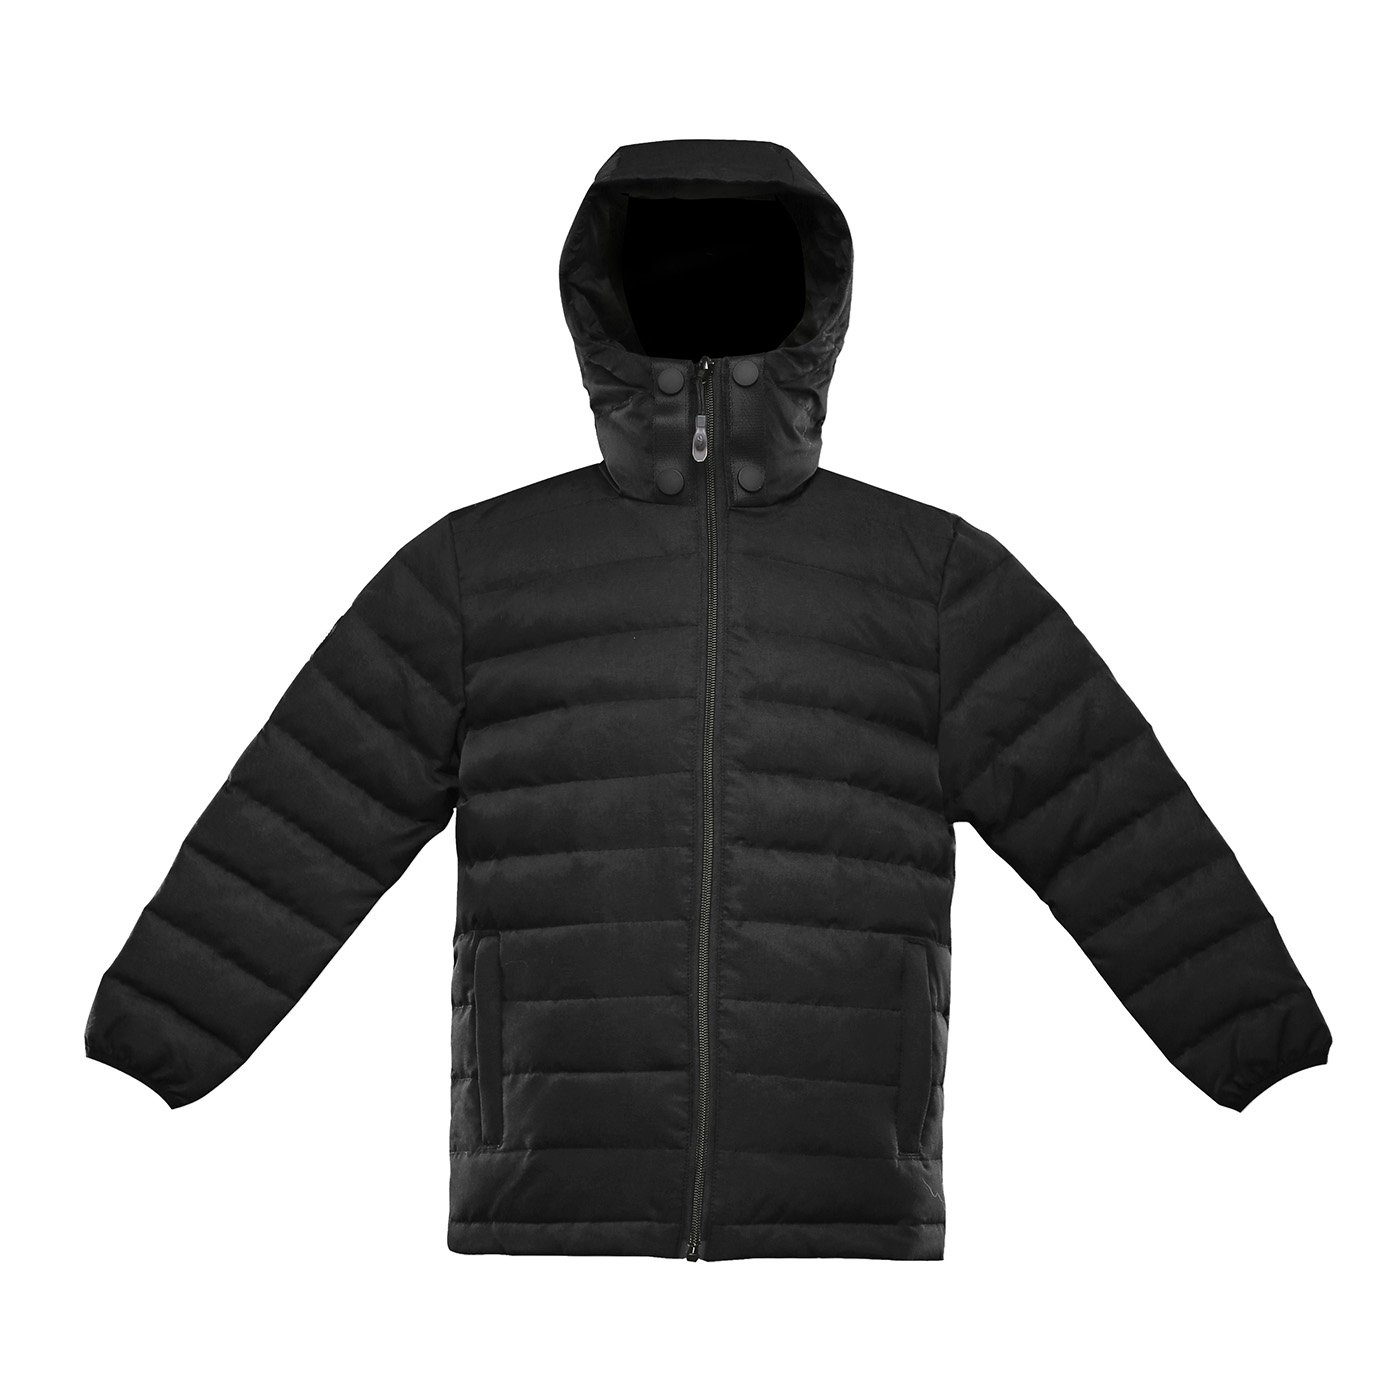 Triple F.A.T. Goose Saga Collection | Boys 750 Fill Power Light Weight Down Jacket (12/14, Black)